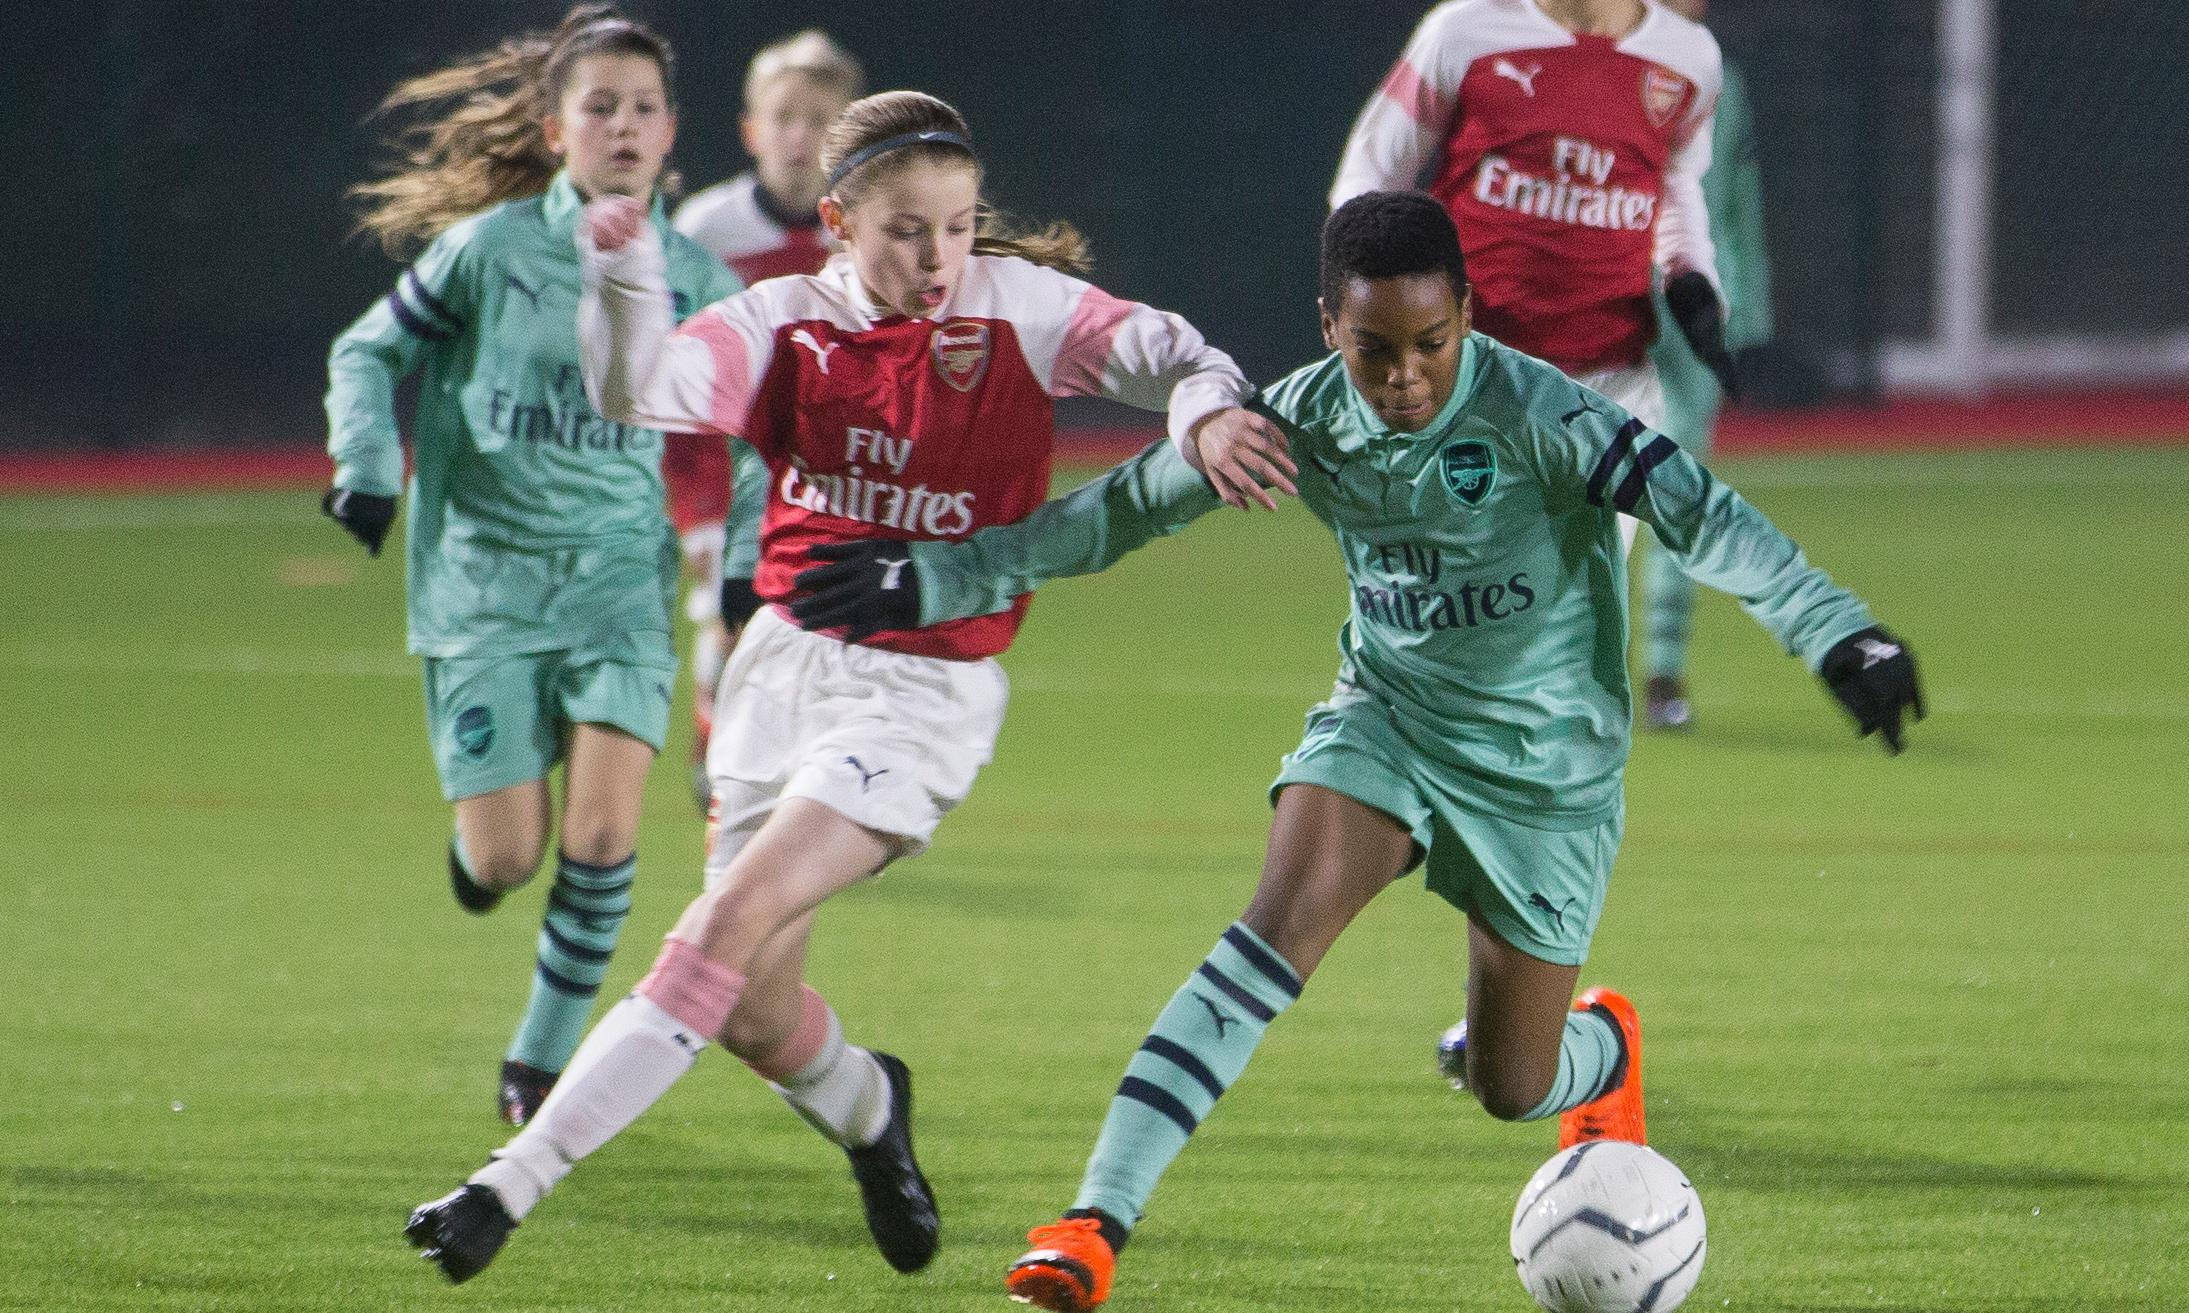 Arsenal's elite girls thrive after being put on an equal footing with the boys